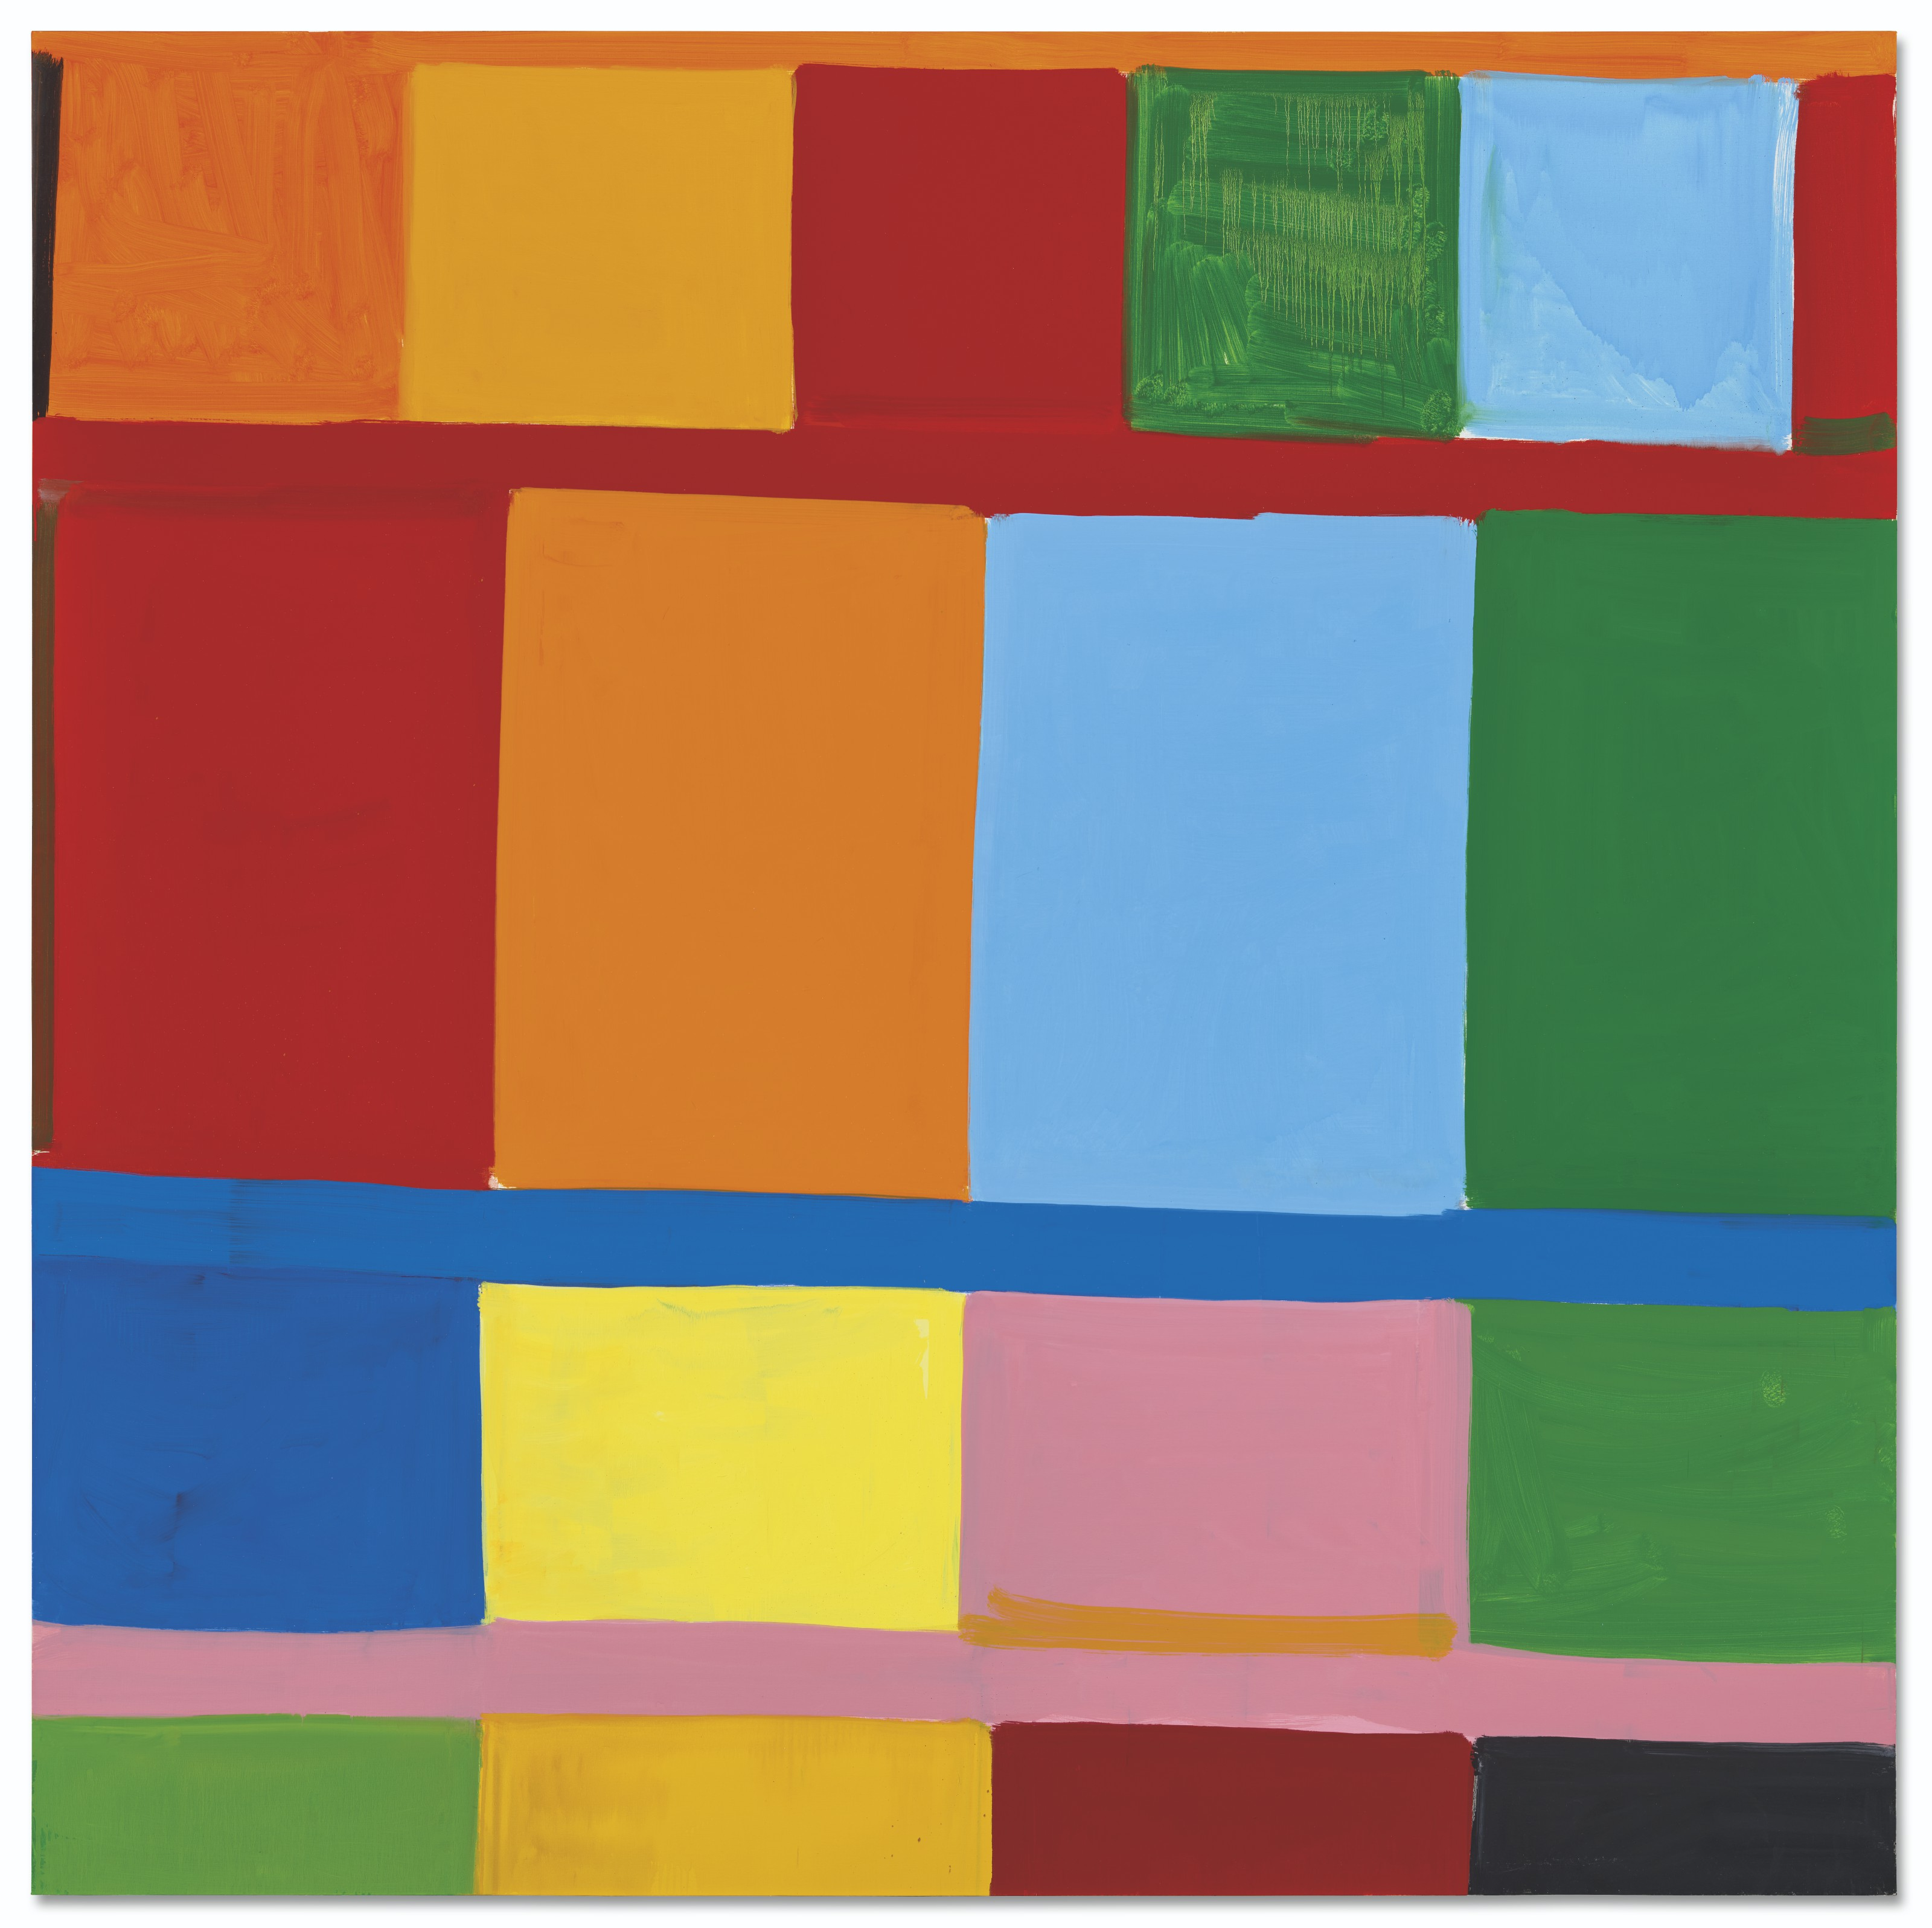 Stanley Whitney (b. 1946), Light a New Wilderness, 2016. Oil on linen. 96 x 96 in (243.8 x 244 cm). Sold for £525,000 on 30 June 2021 at Christie's in London